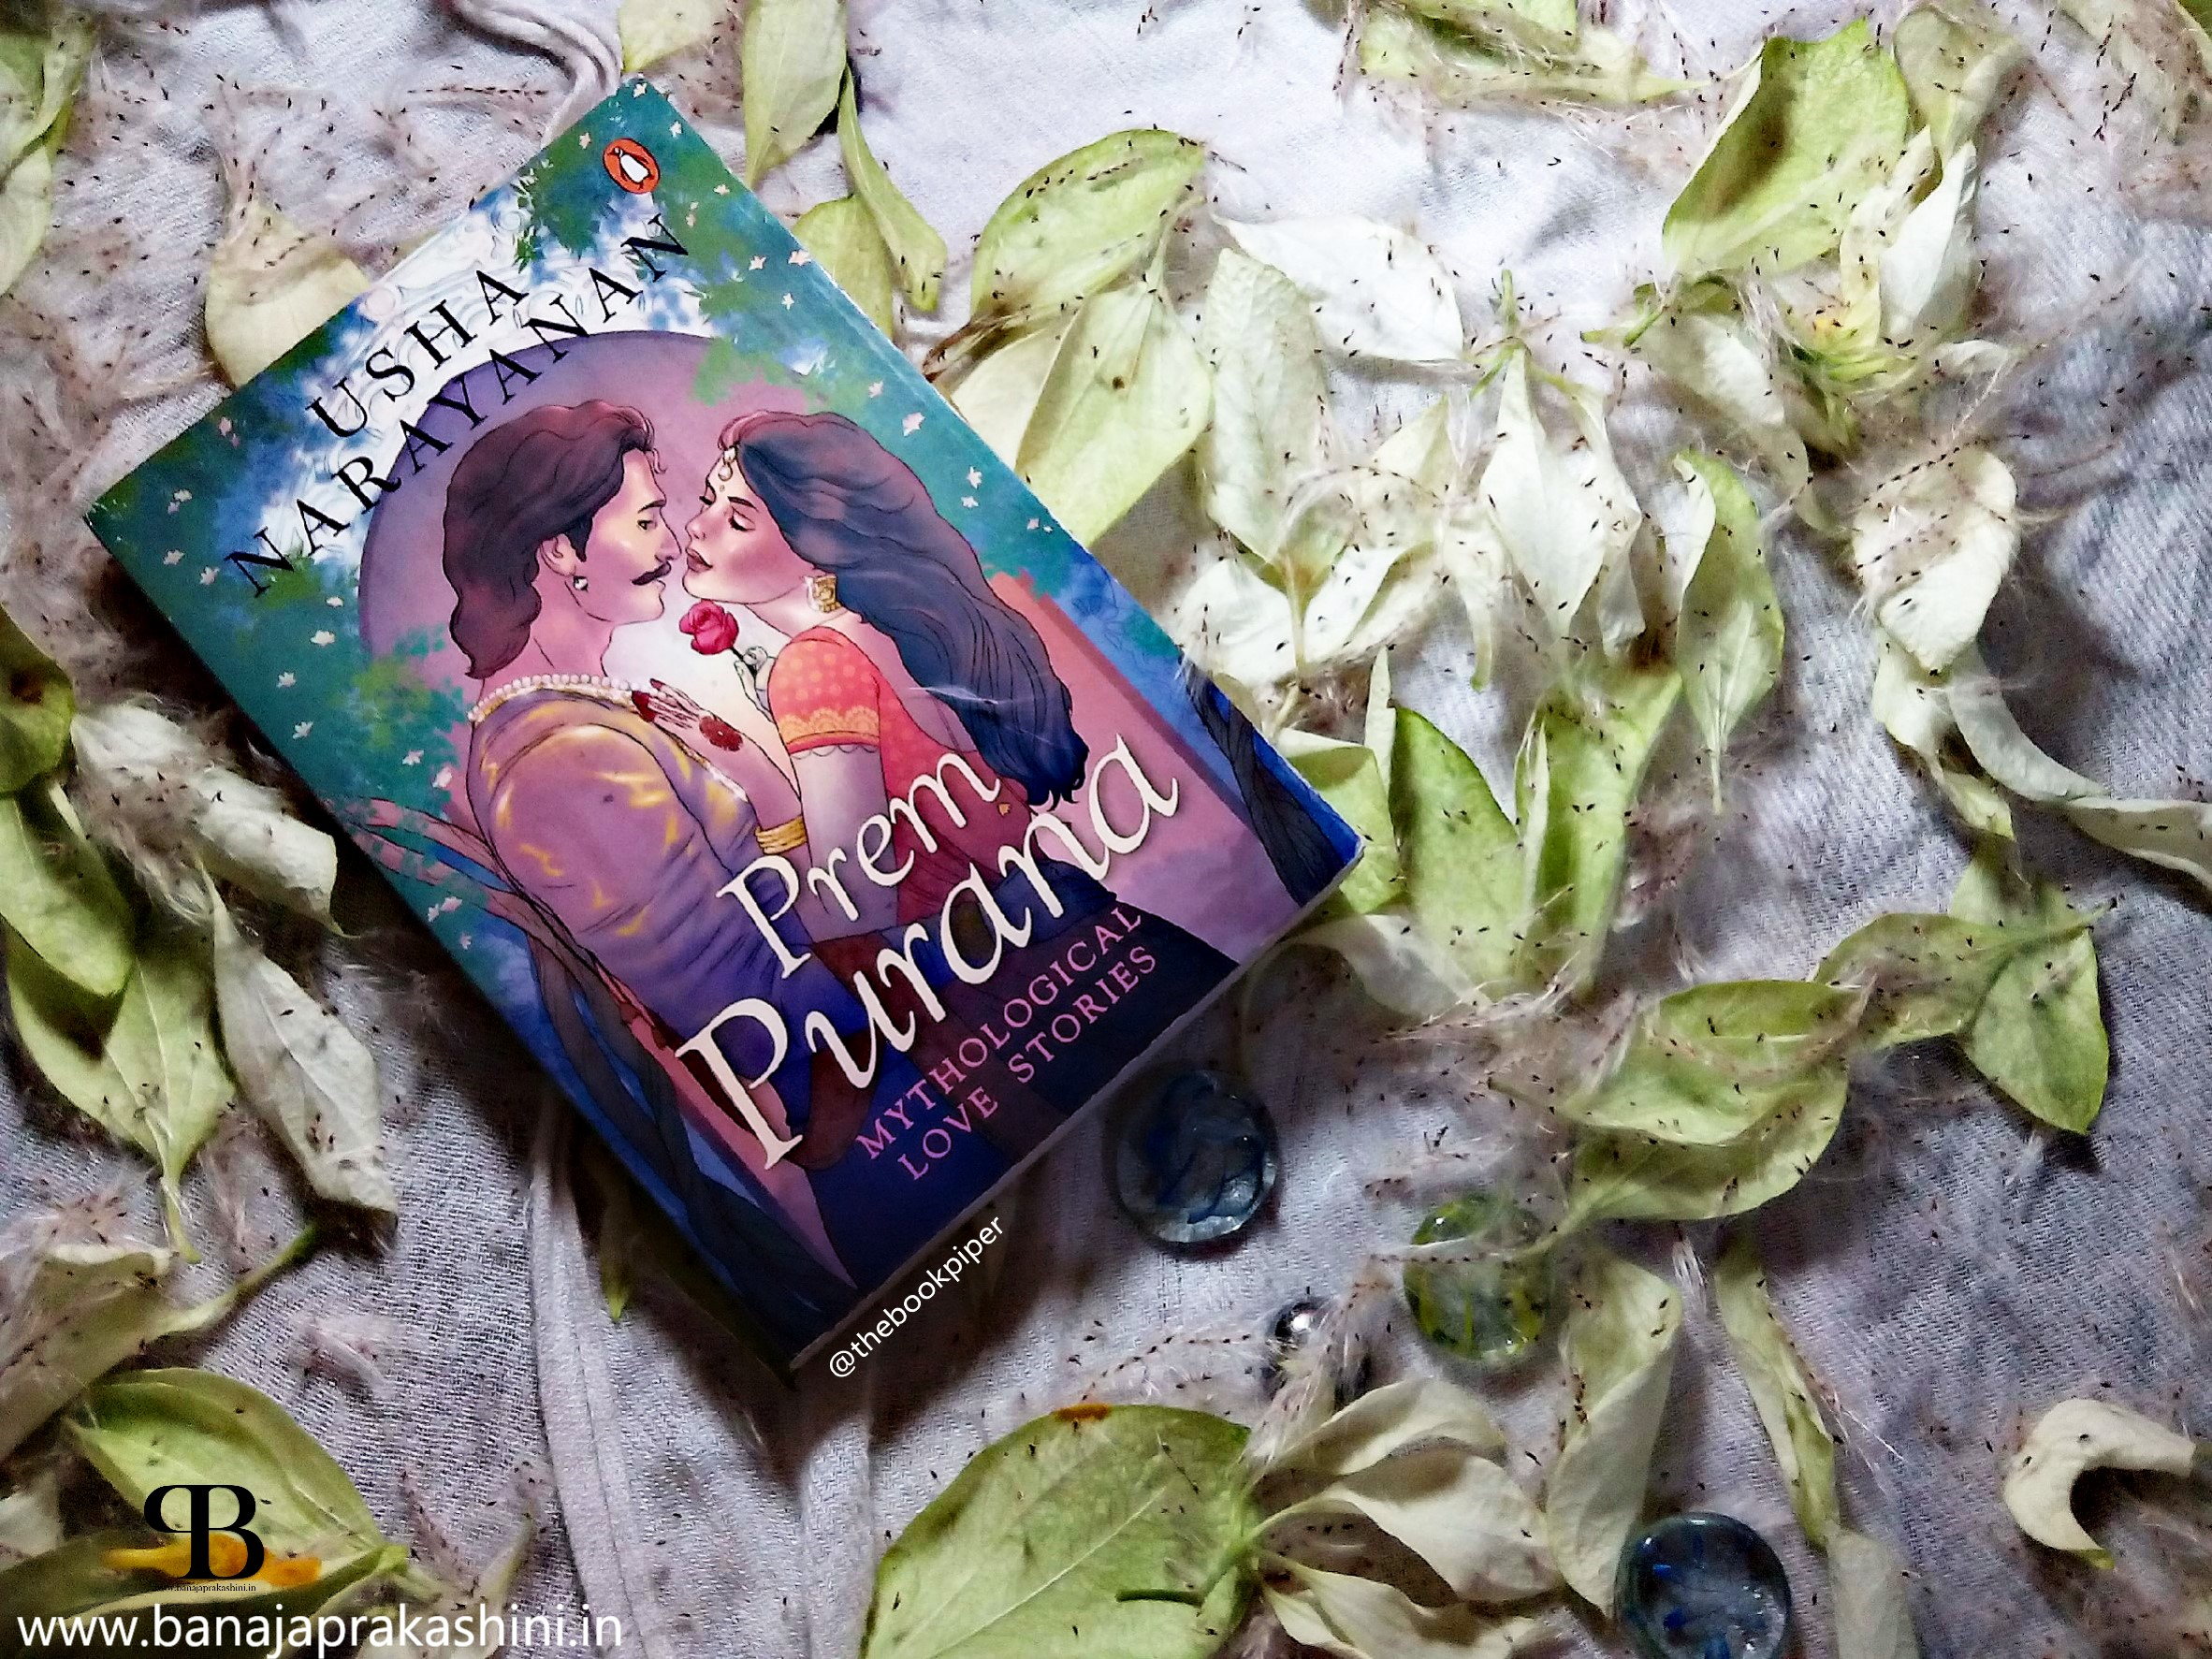 Review Pen: Prem Purana by Usha Narayanan